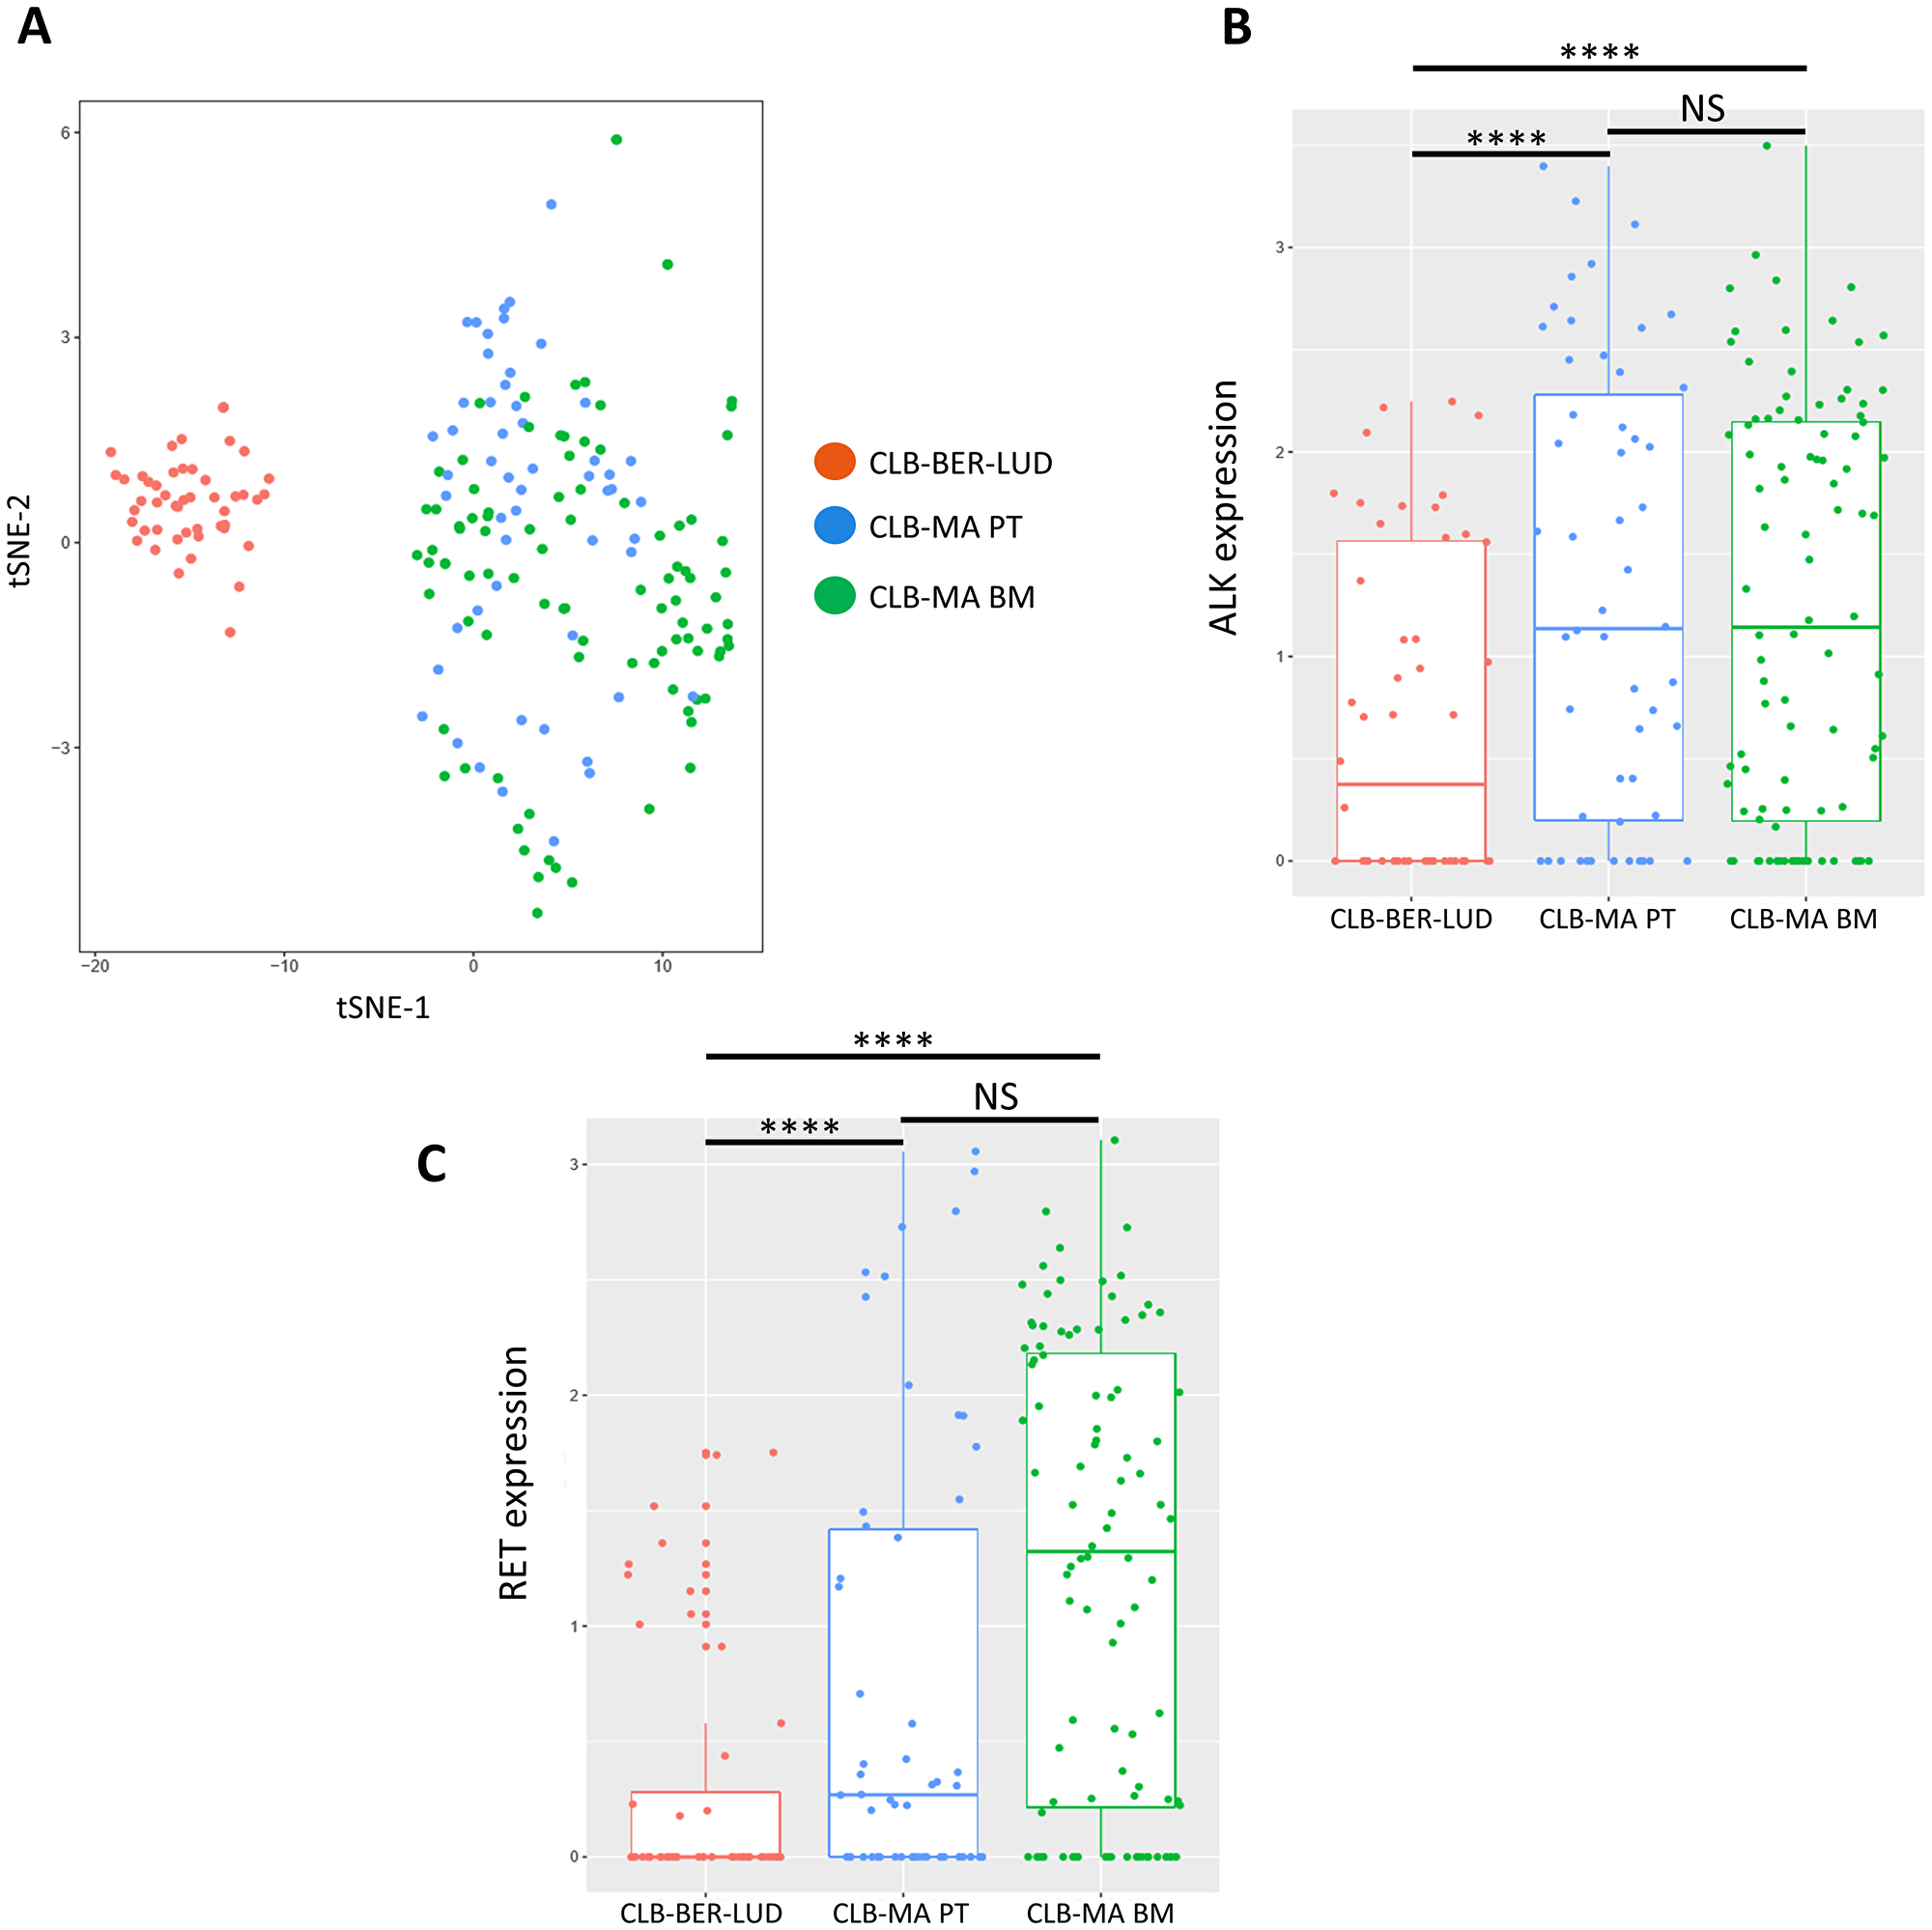 Single-cell RNA-seq analysis on CLB-MA PT and CLB-MA BM cell lines.